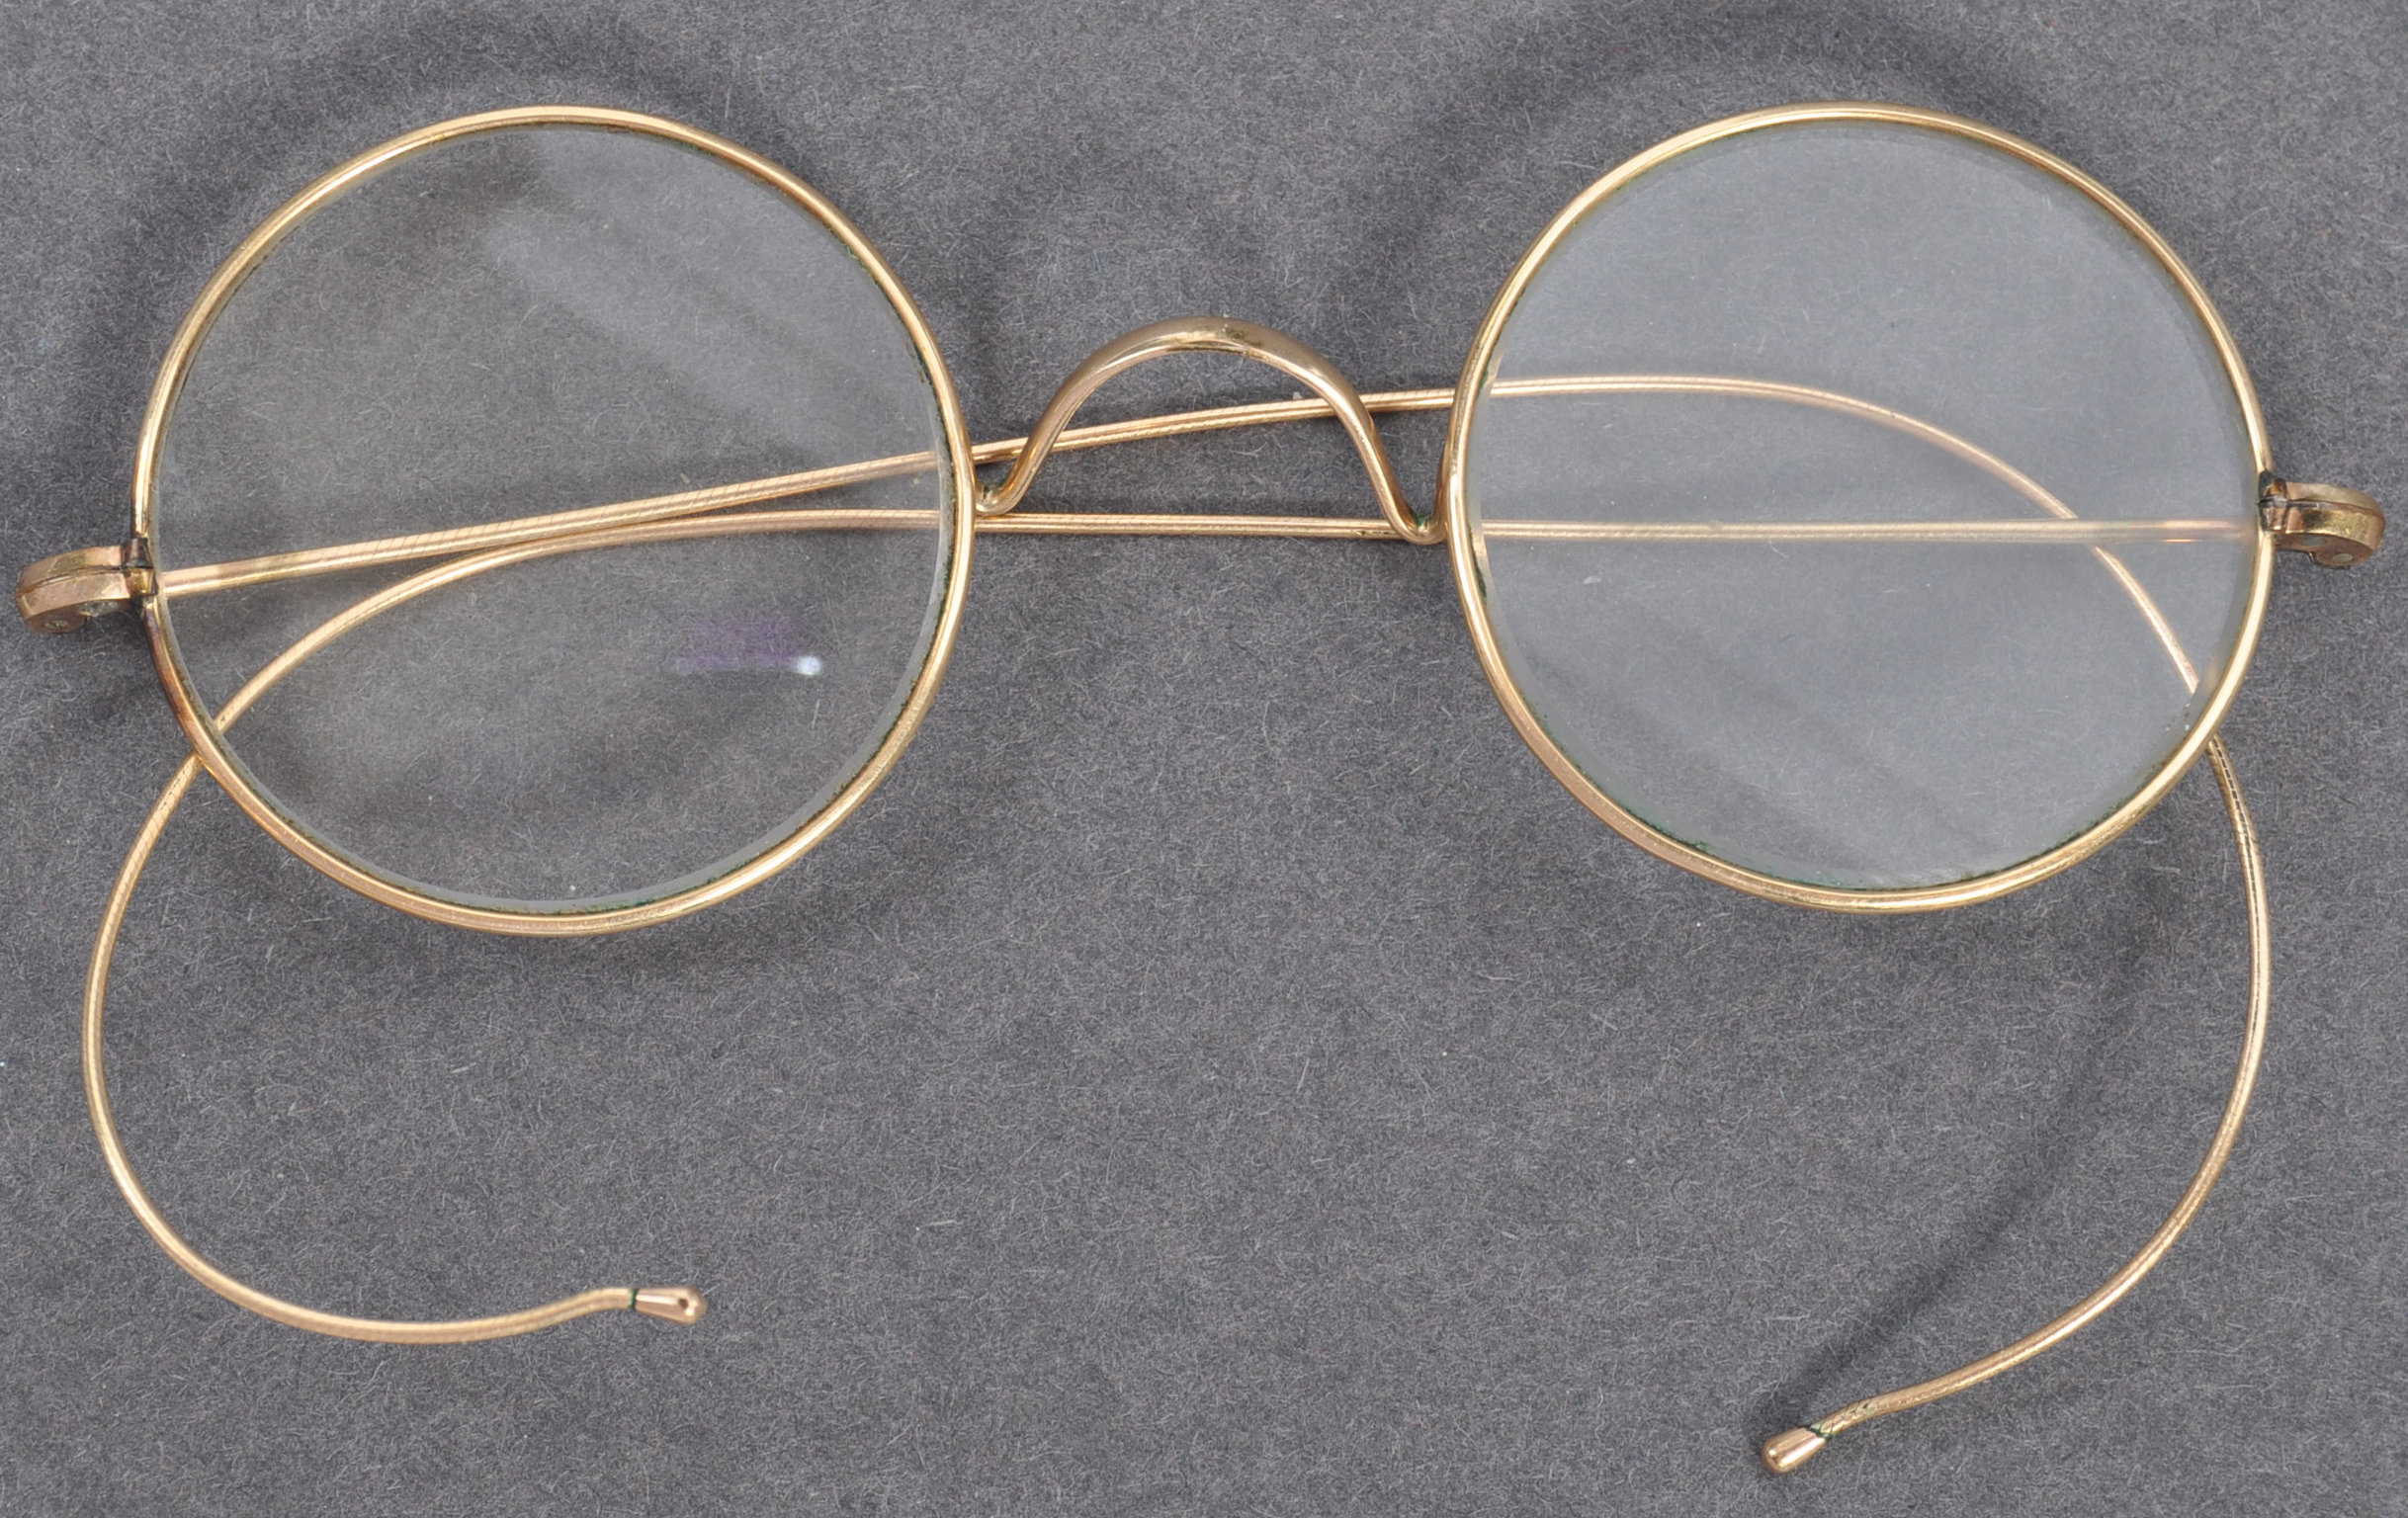 PAIR OF MATHATMA GANDHI'S PERSONAL SPECTACLES - Image 2 of 7